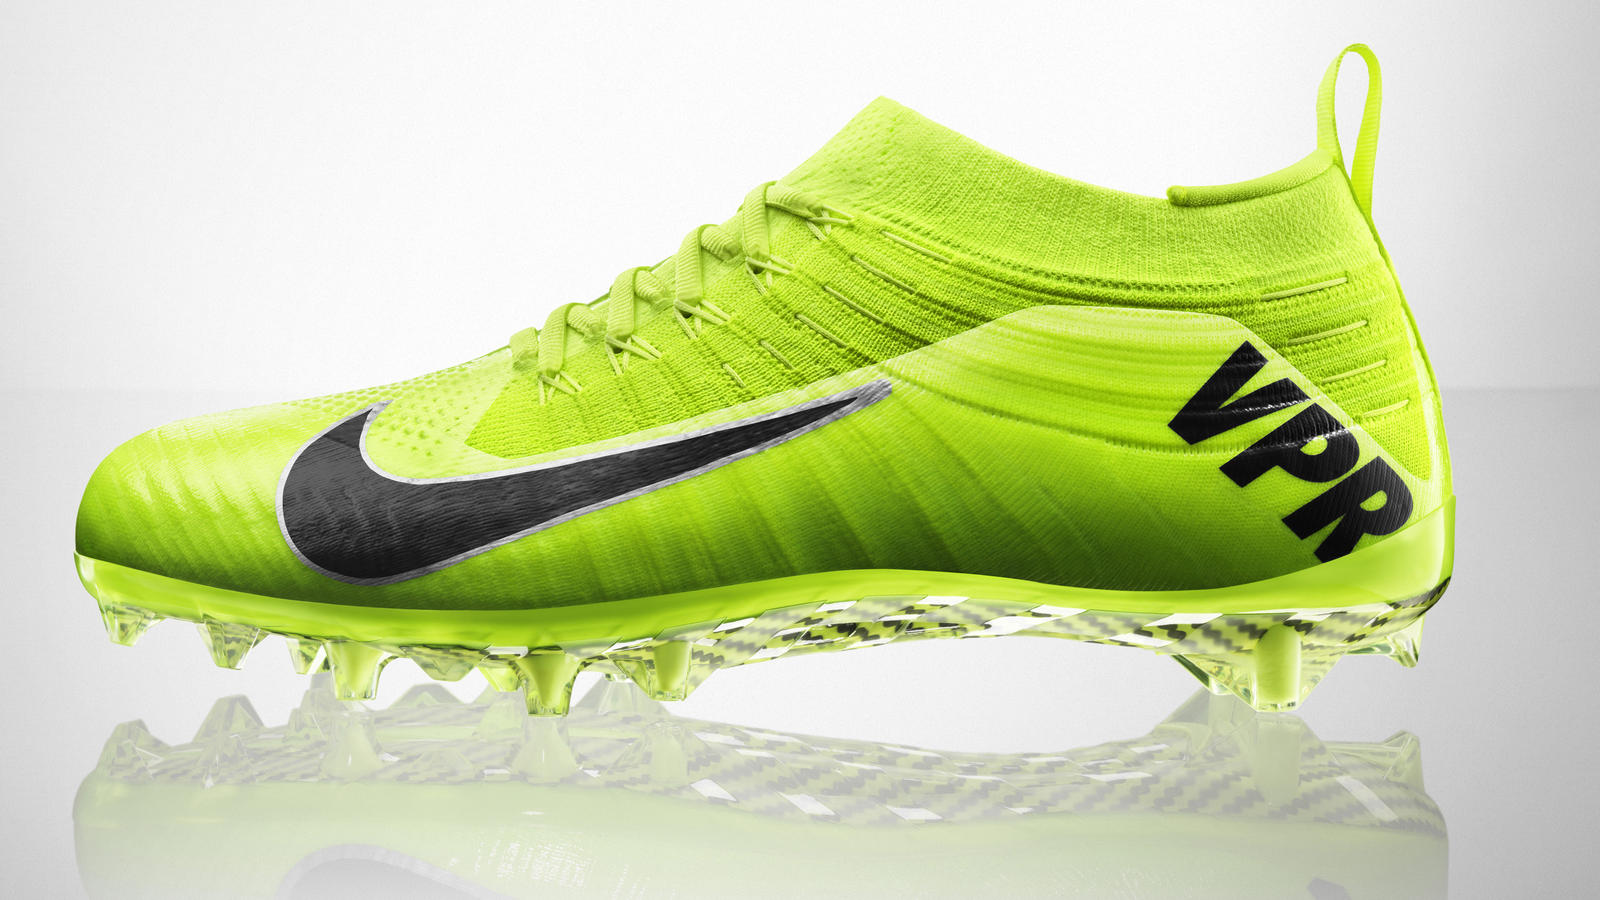 fa14 at nfb vapor ult td 651338-700 profile pr. Nike Vapor Ultimate -  Football s First Flyknit Cleat d86bbf4072d7